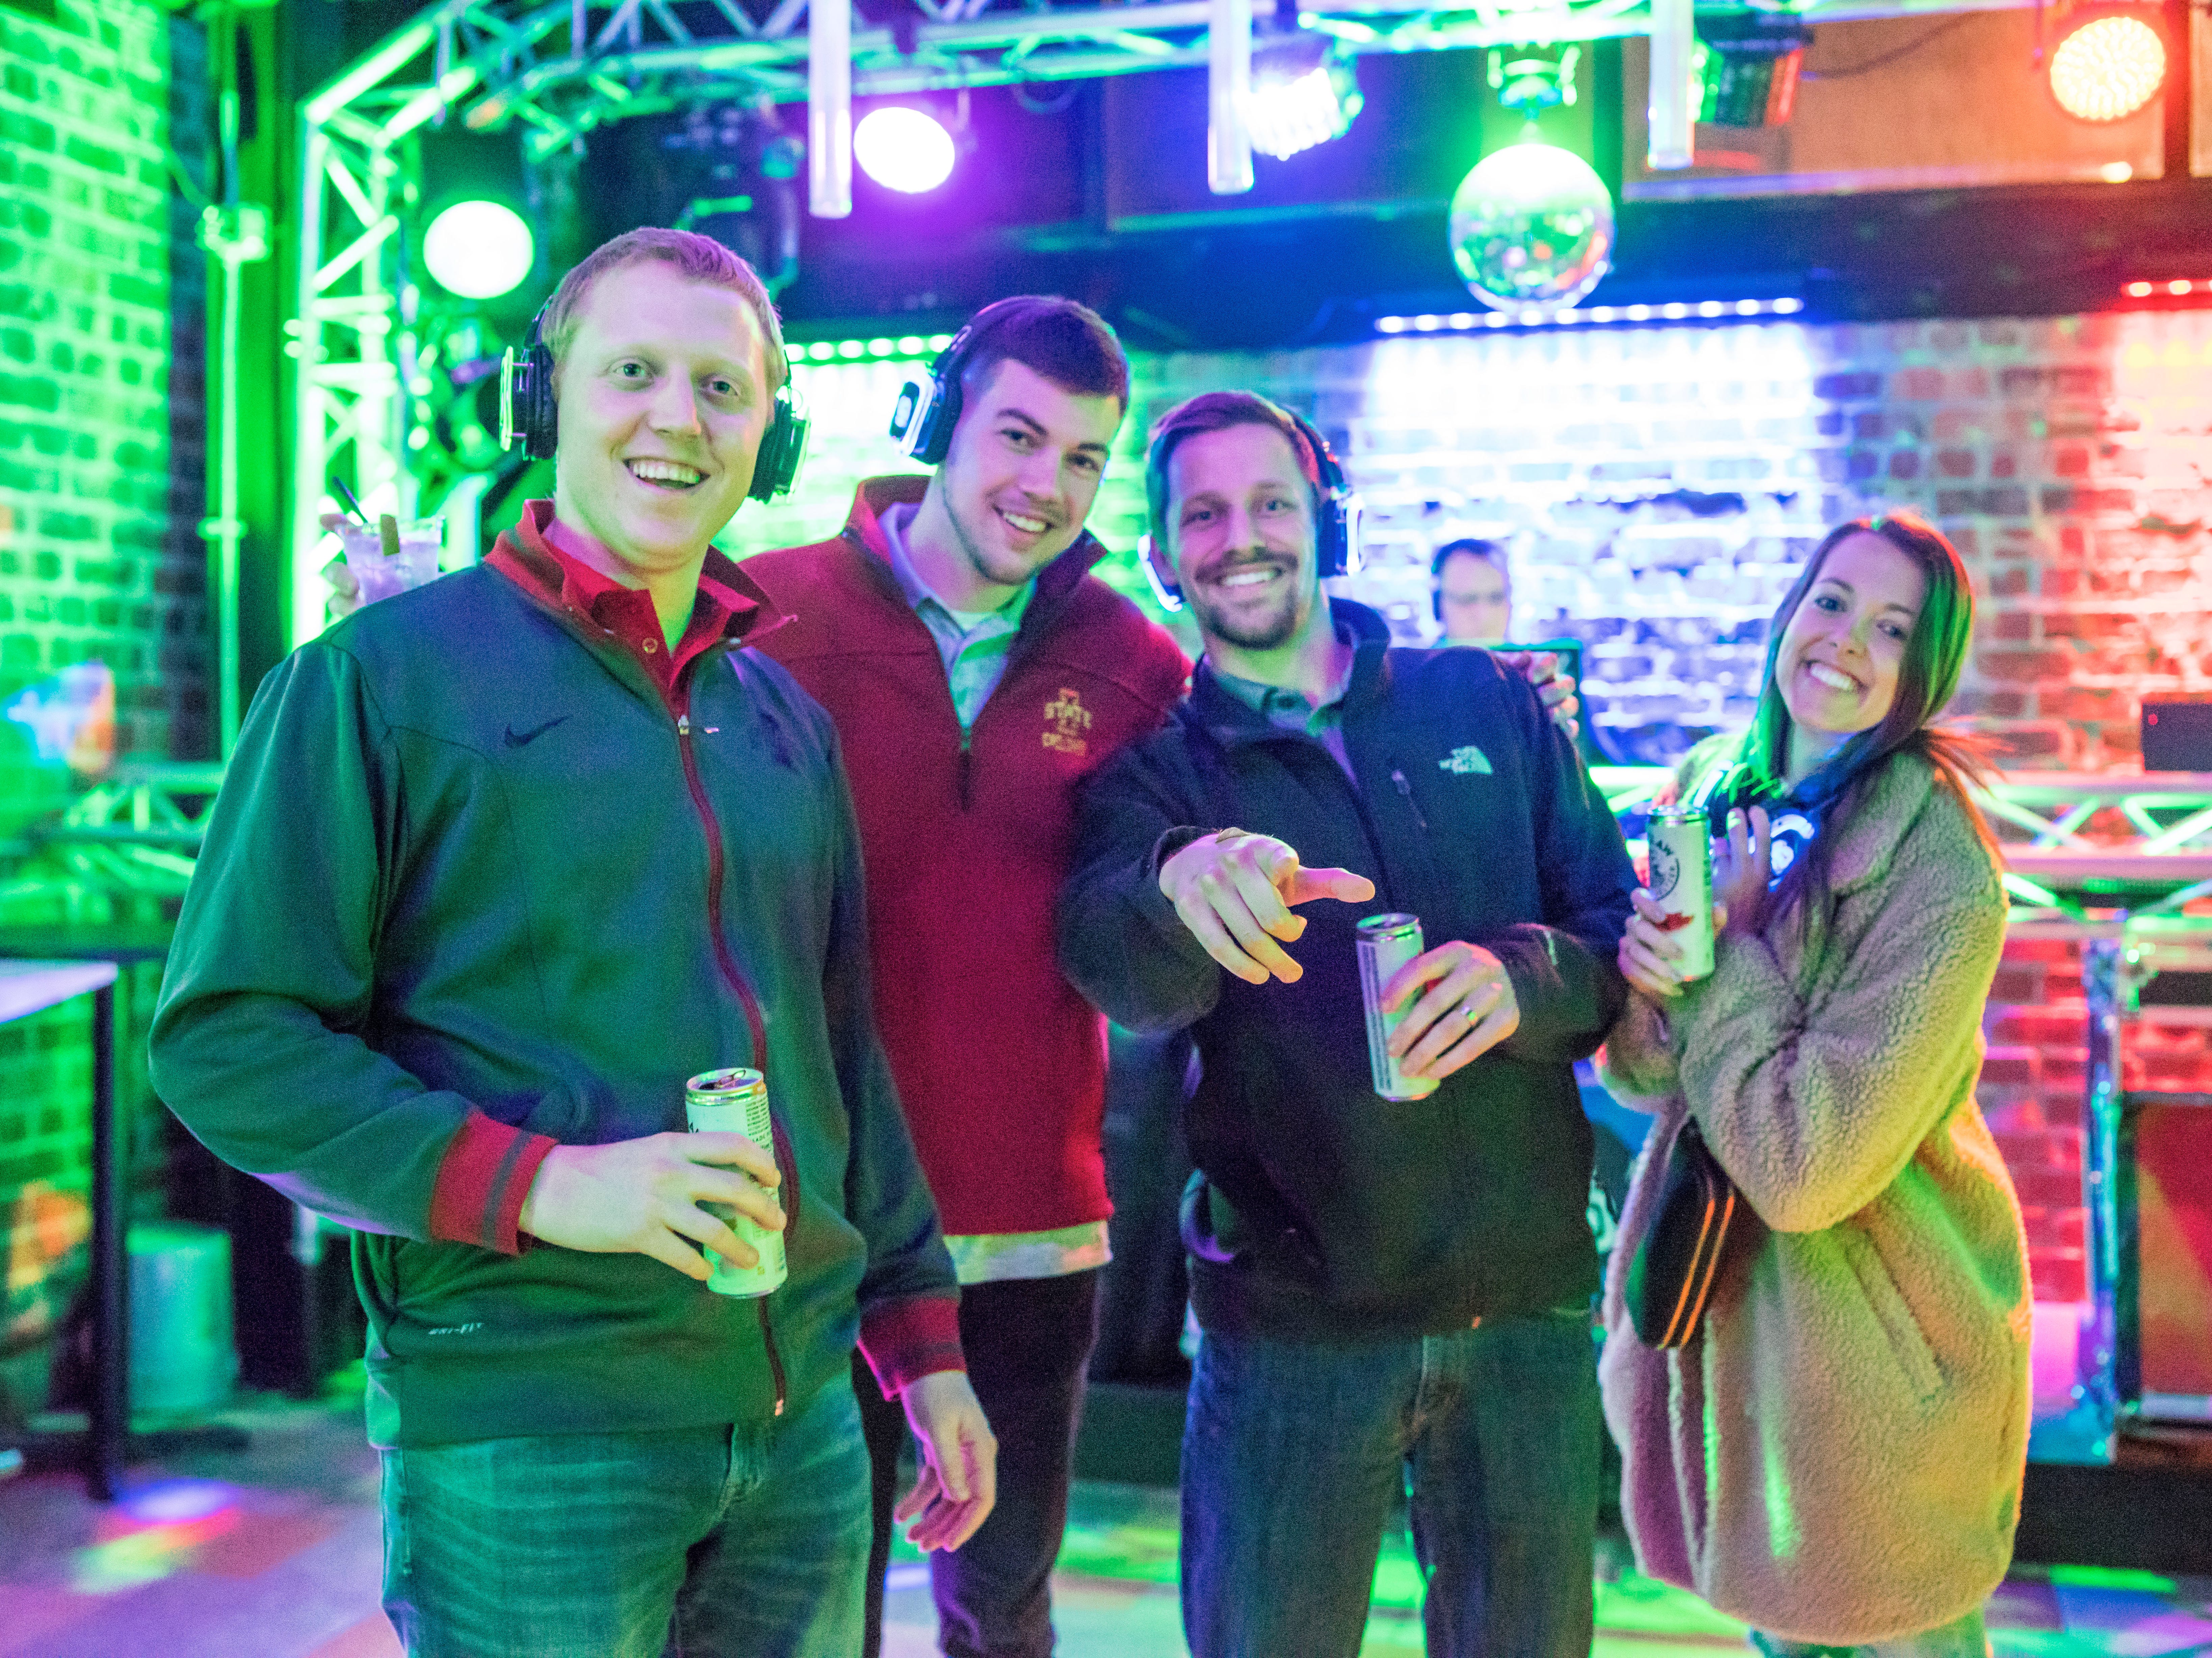 Chelsey Christensen, 25, Bryce Block, 23, Bobby Degnman, 24, and Nick Onken, 25, all of Des Moines, enjoying their night, Friday, March 15th, at Hush.